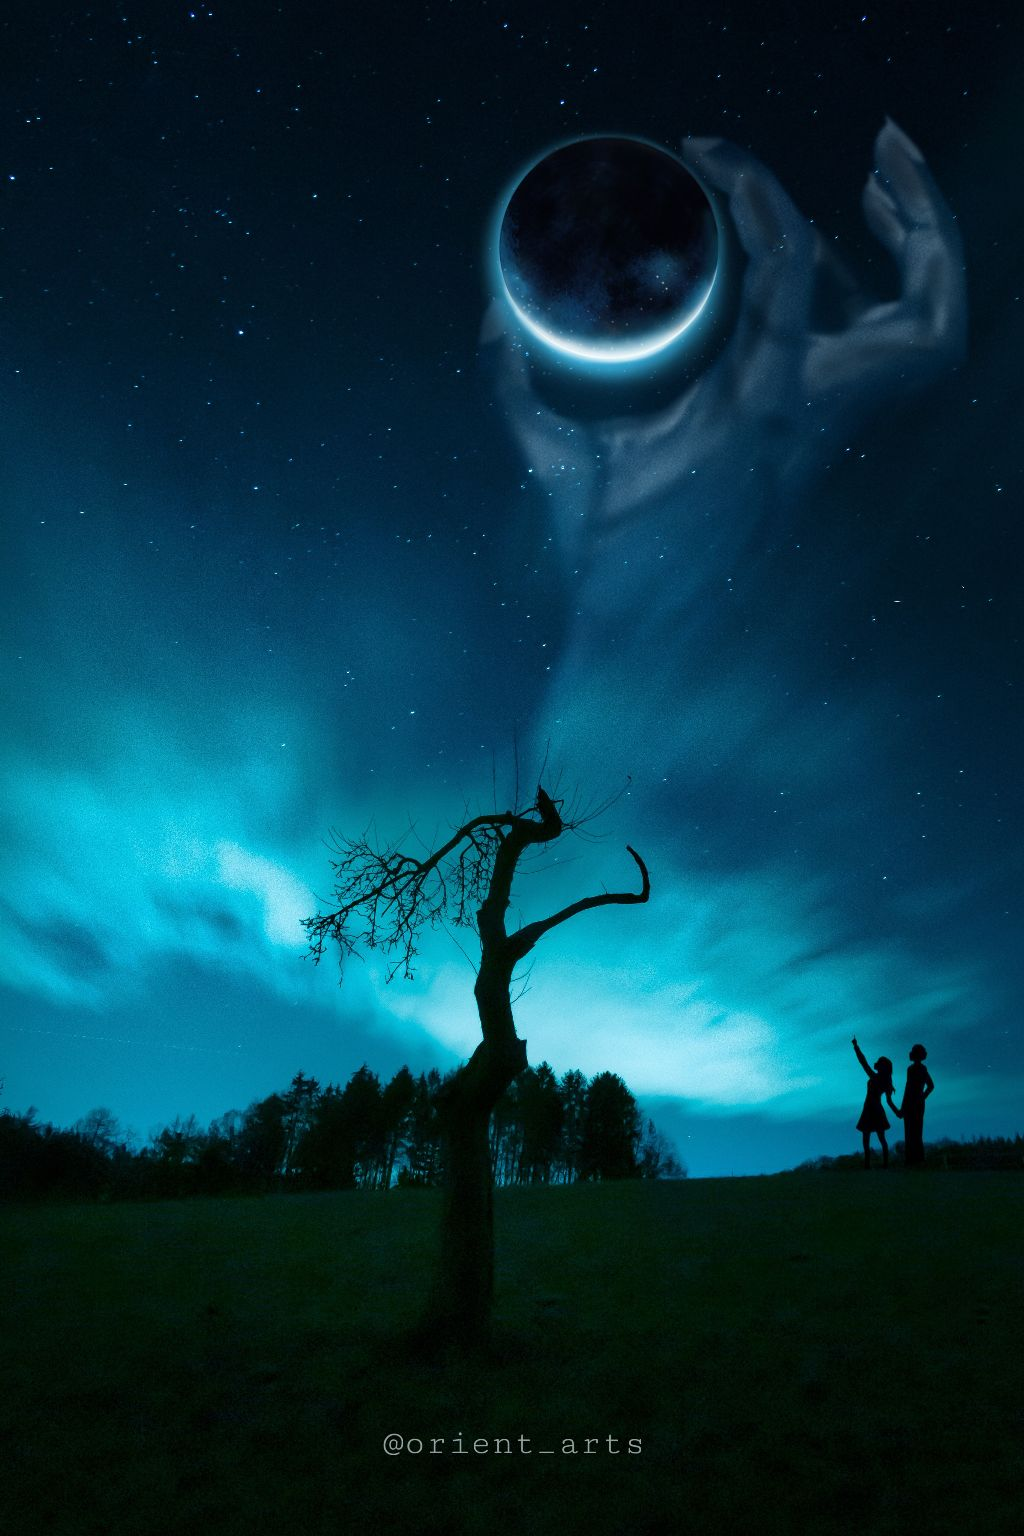 #madewithpicsart #imagination #silhouette #planet #scary #hand #nightsky #stars #clouds #romantic #freetoedit